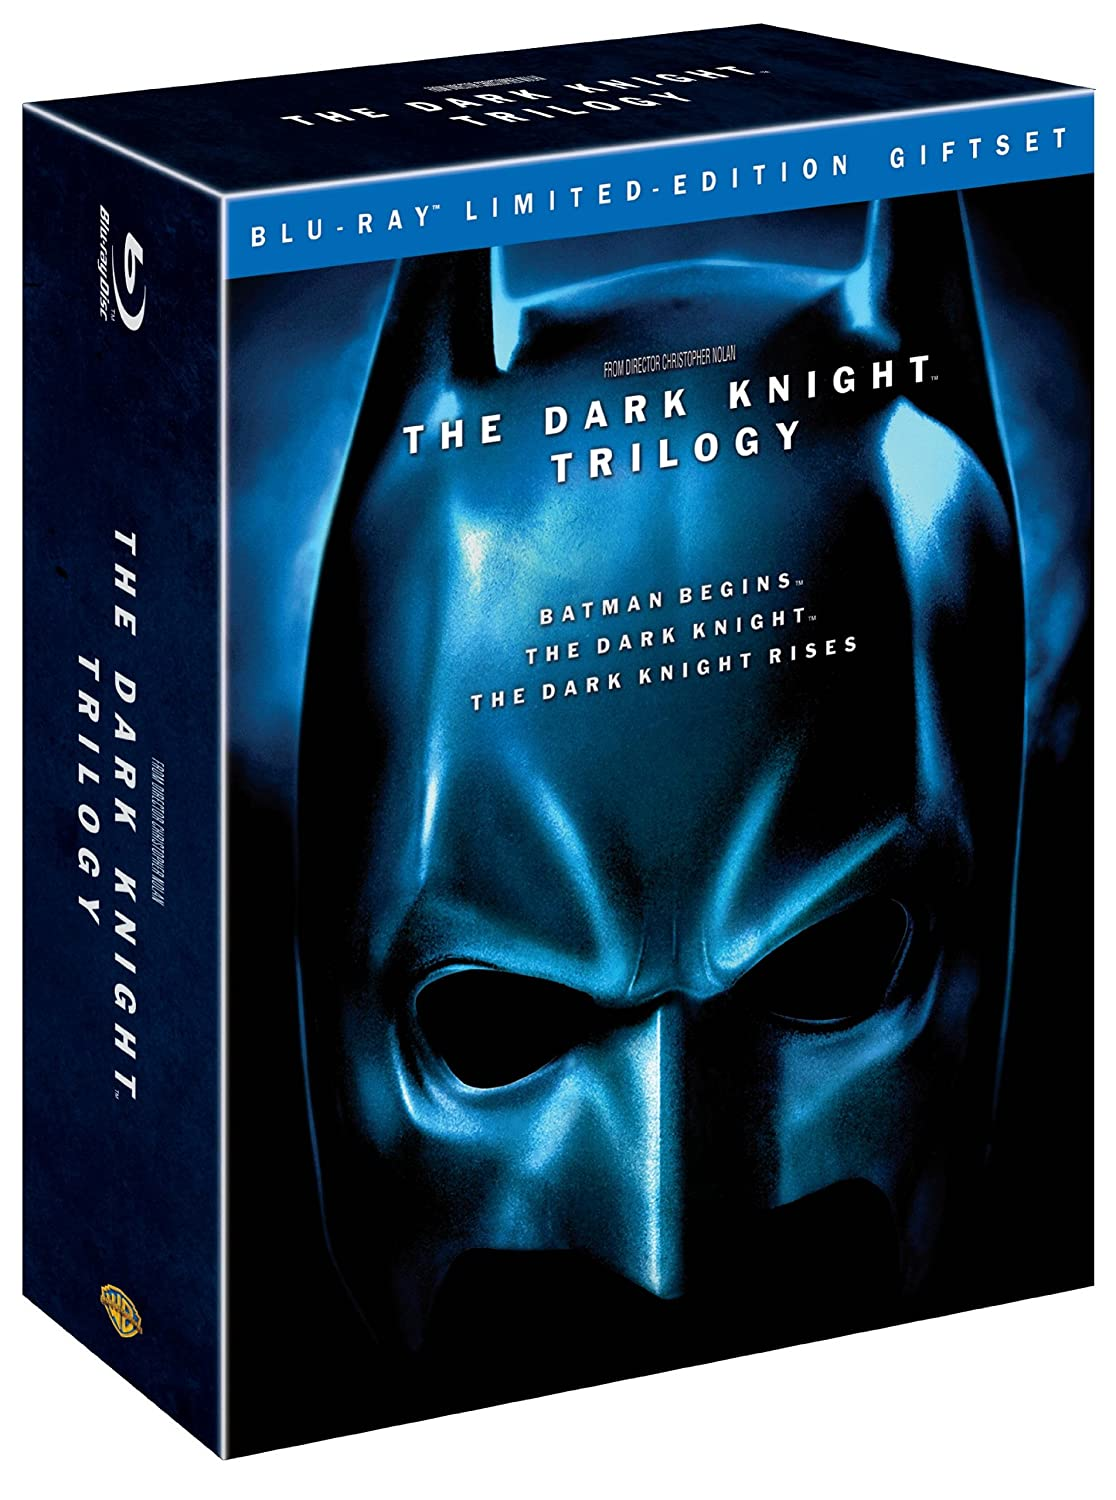 The Dark Knight Trilogy (Batman Begins / The Dark Knight / The Dark Knight Rises) [Blu-ray] $24.99